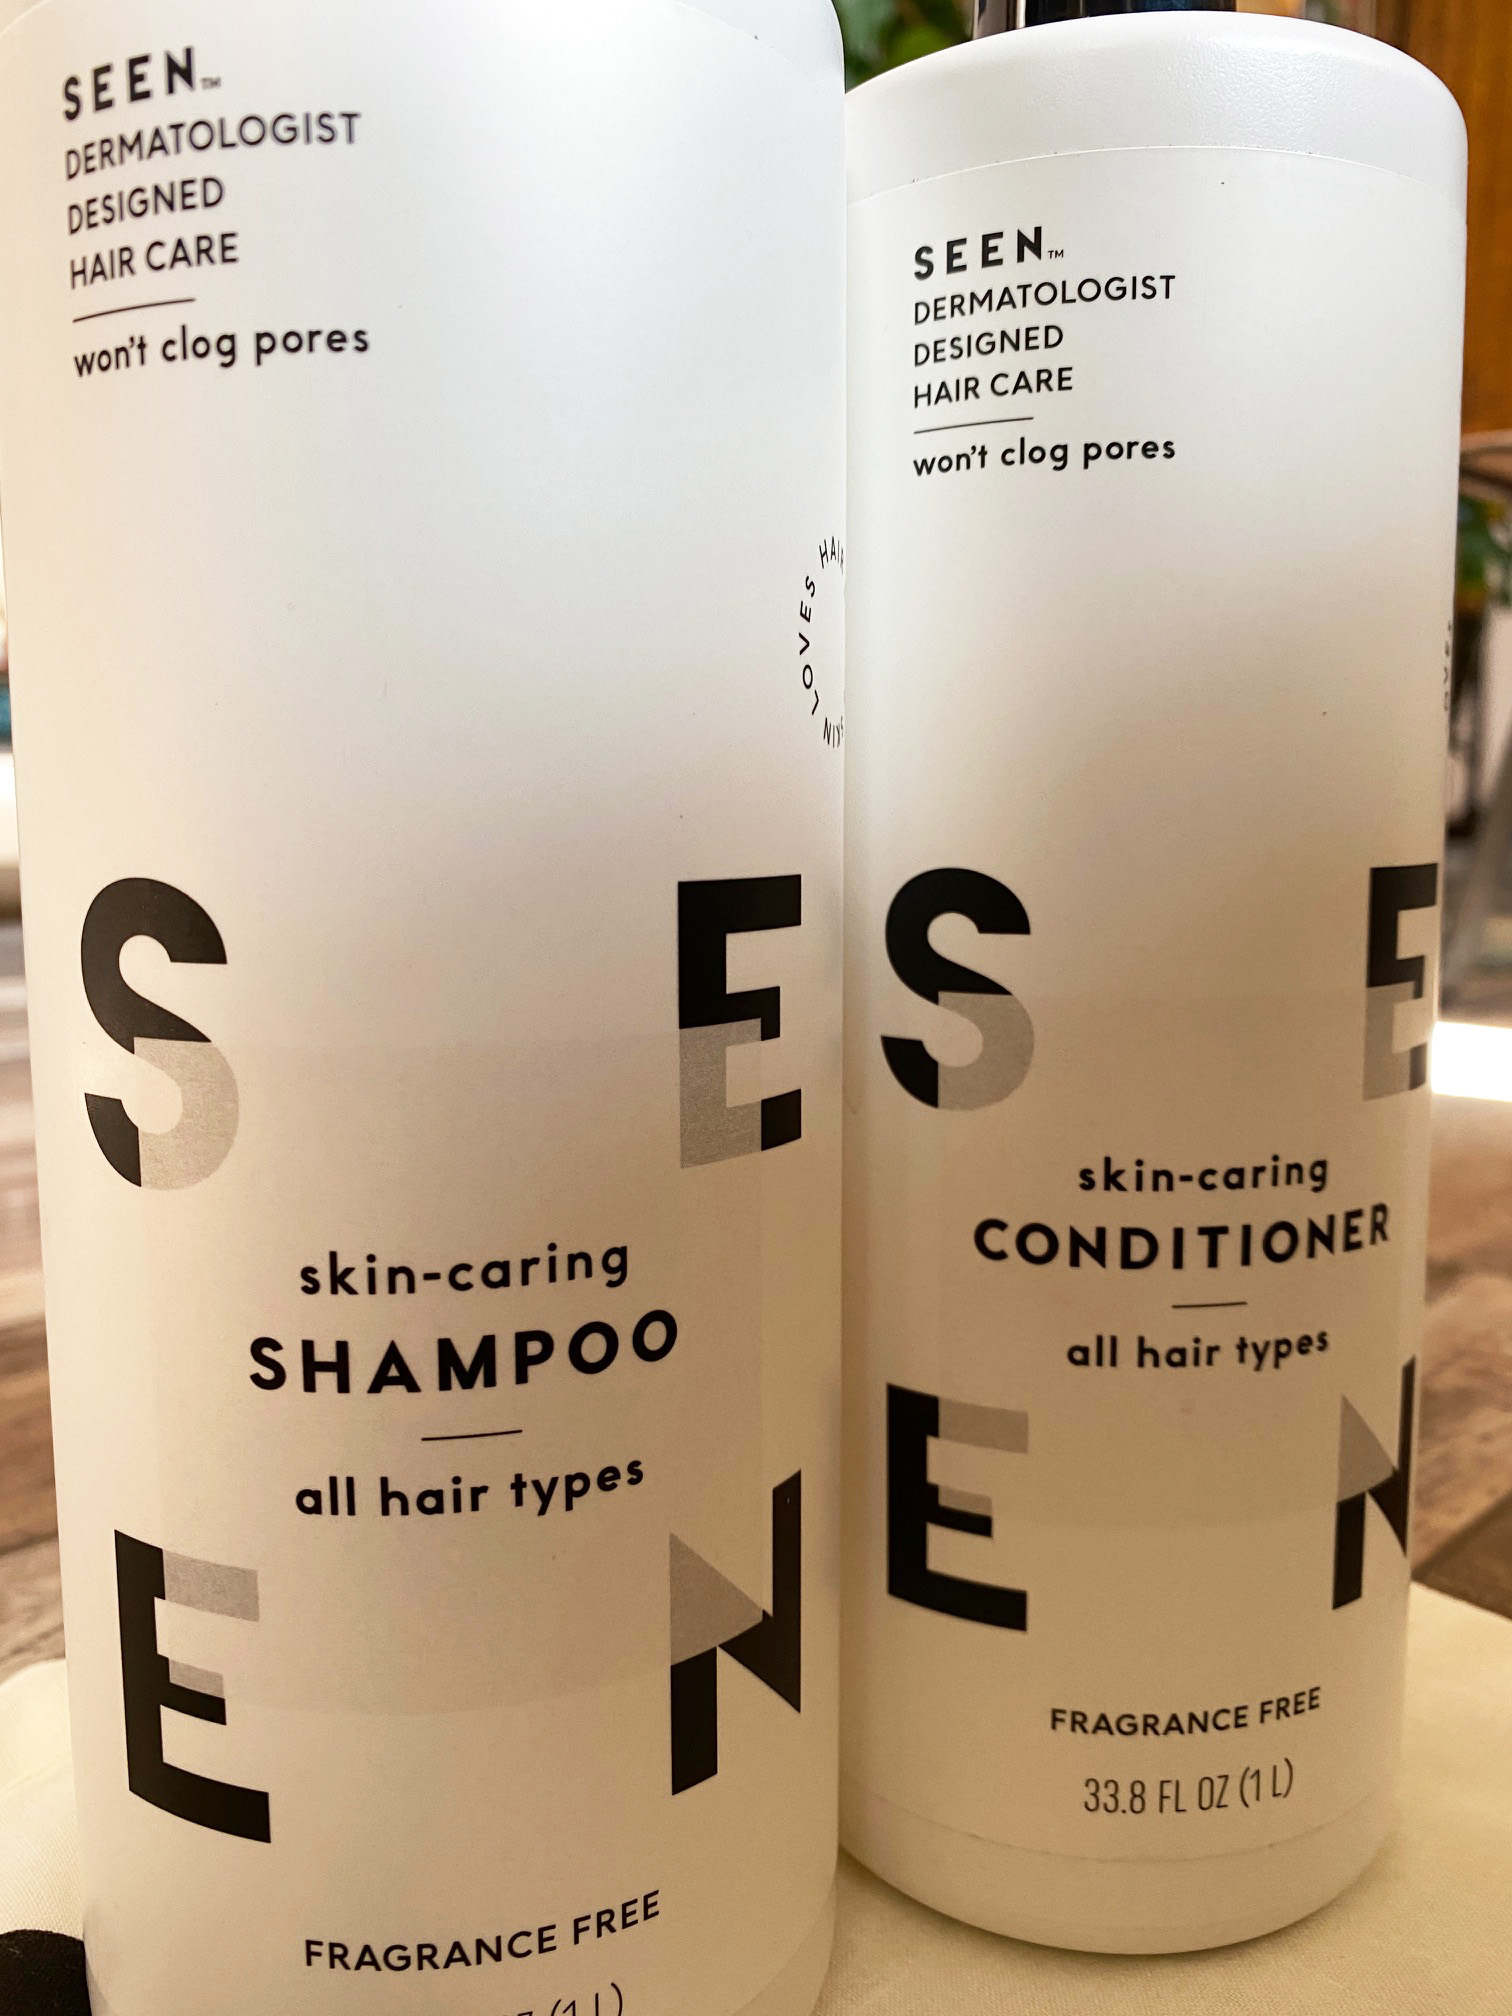 Image of SEEN Shampoo and Conditioner Liter Bottles